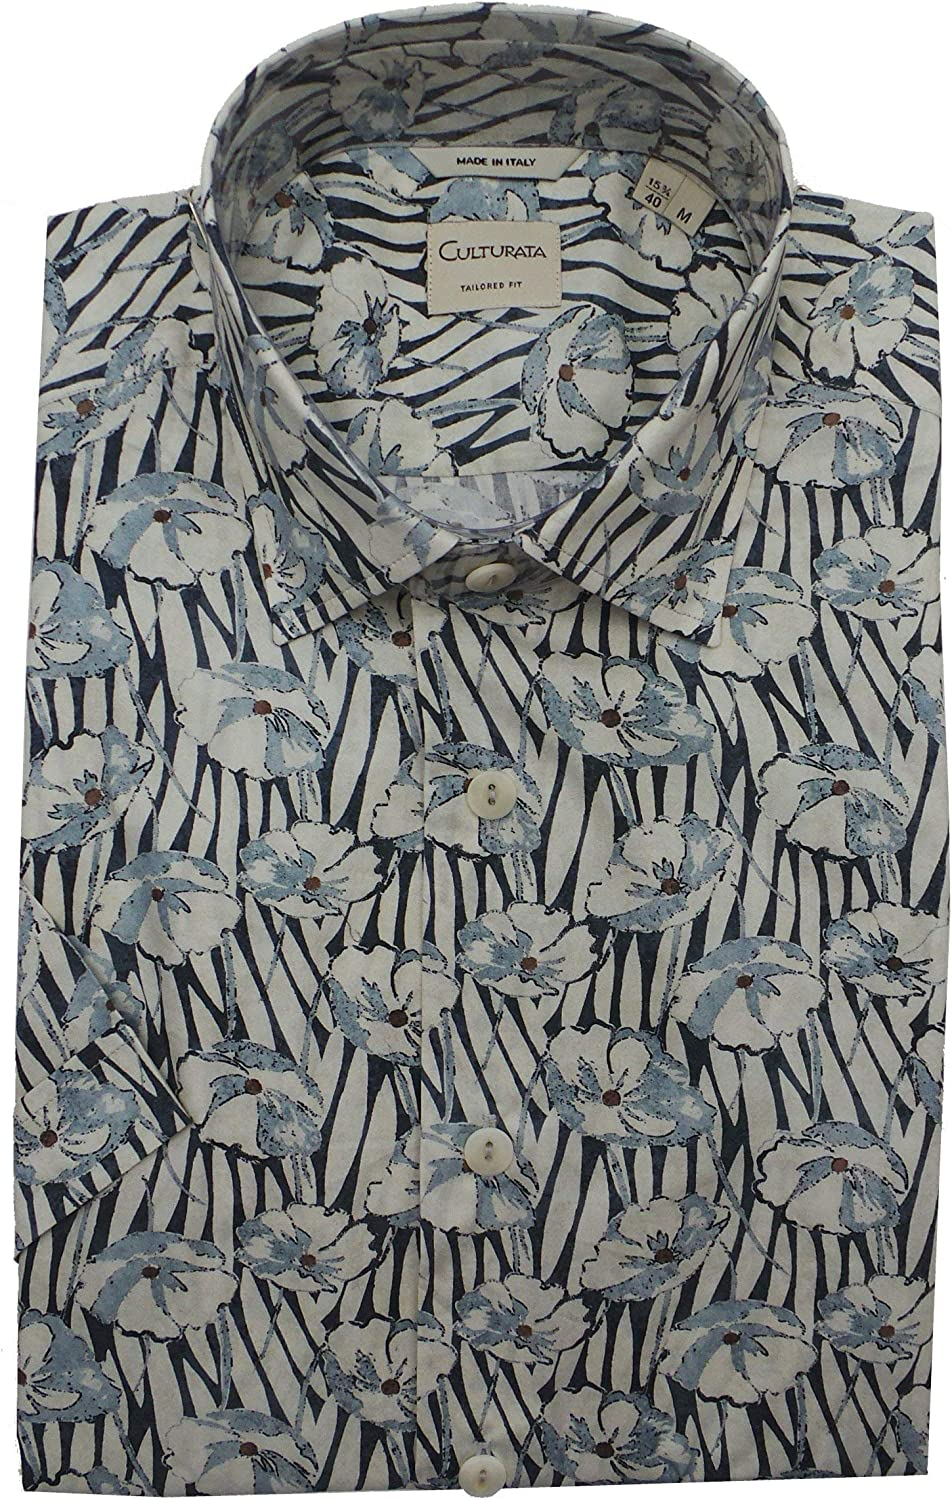 Culturata Abstract Print Lightweight Animer and price revision Shirt Sleeve Short Industry No. 1